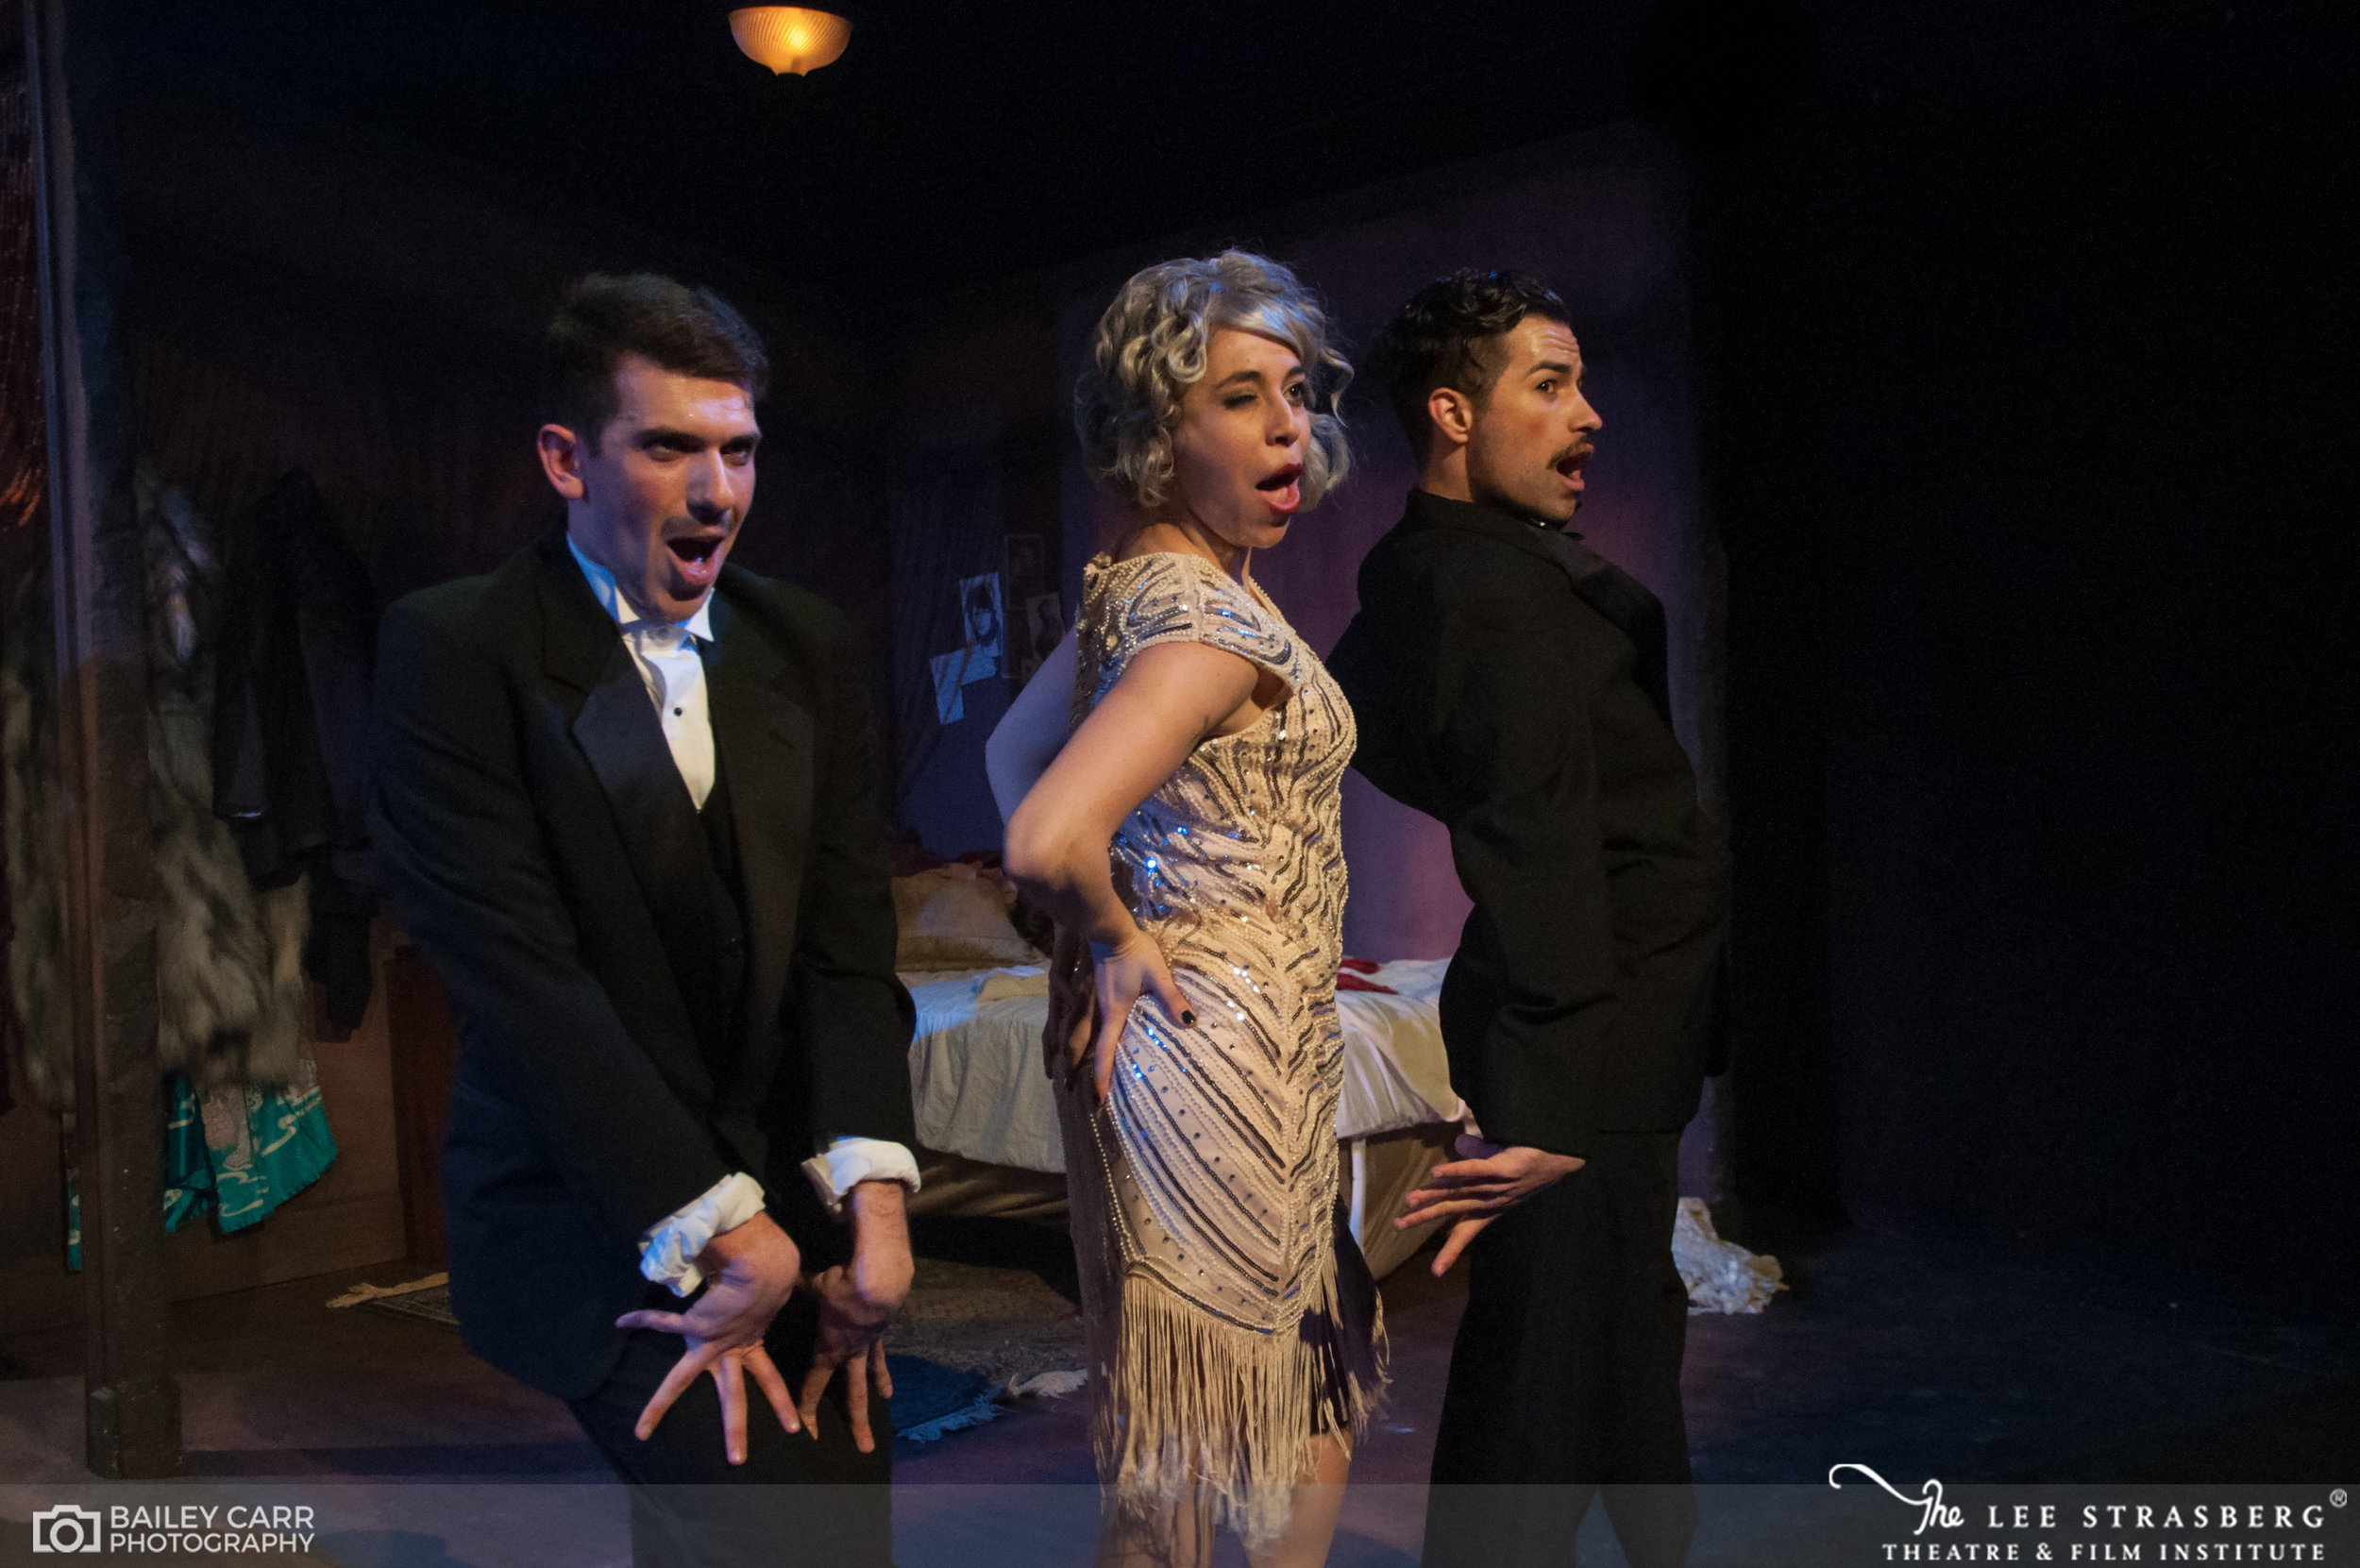 The Wild Party (Oscar D'Armano)